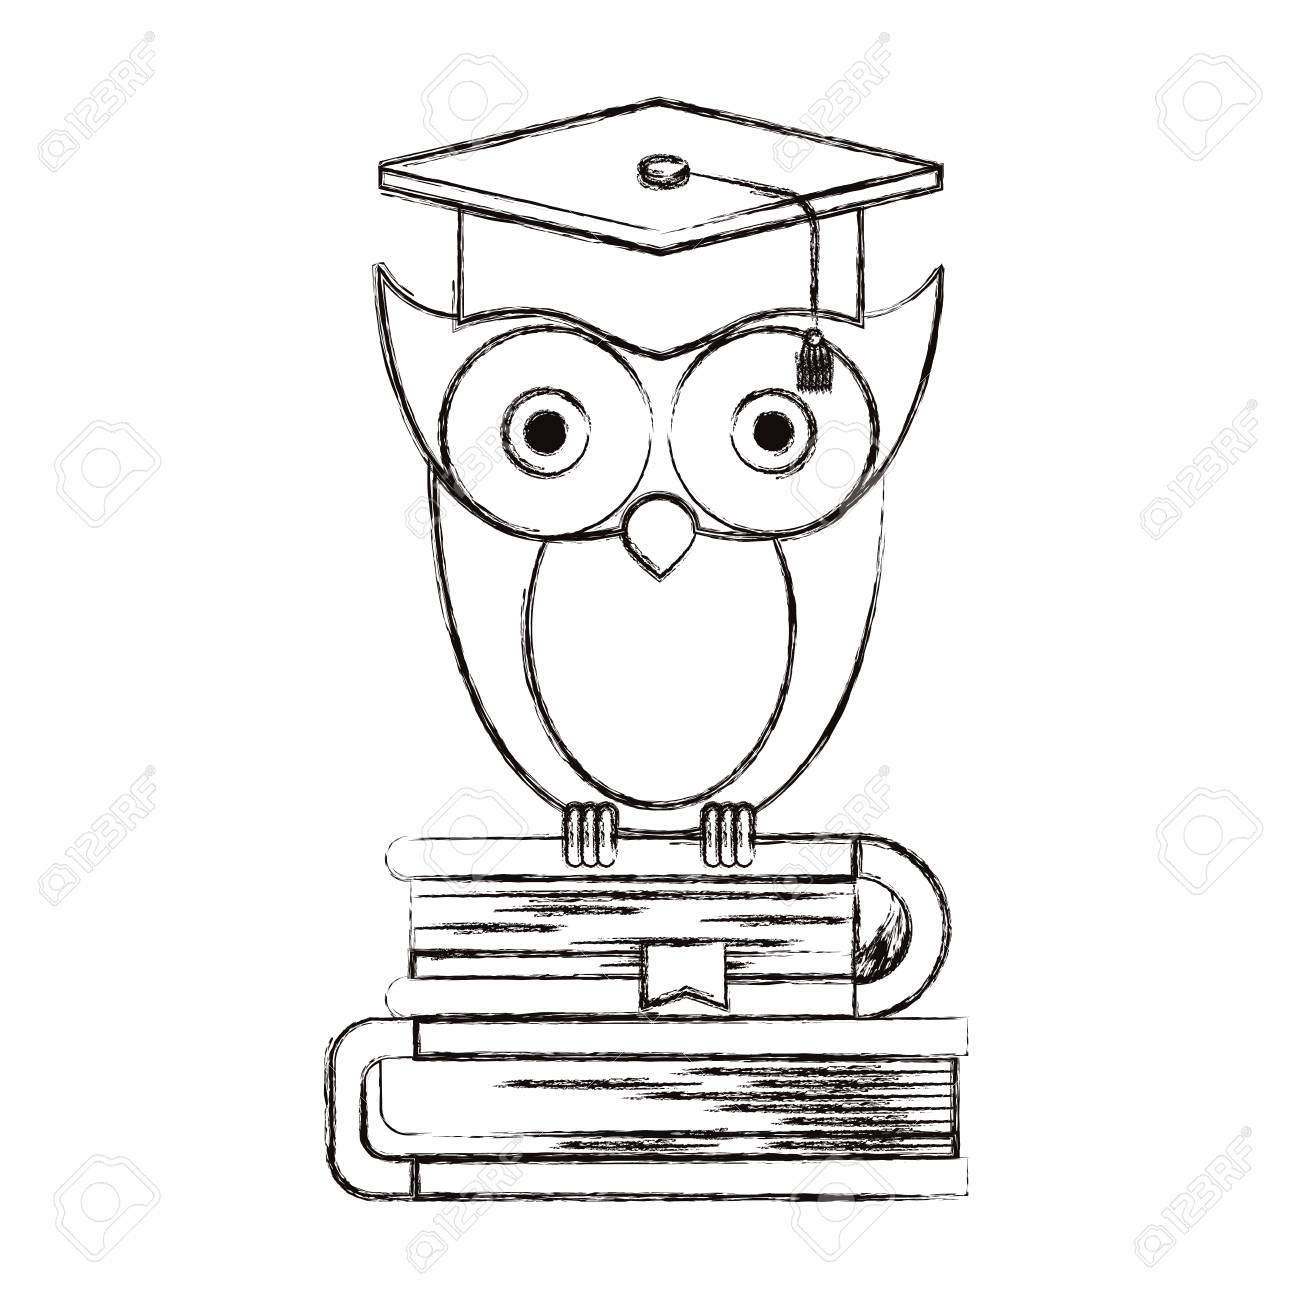 1300x1300 Sketch Blurred Silhouette Of Owl Knowledge With Cap Graduation